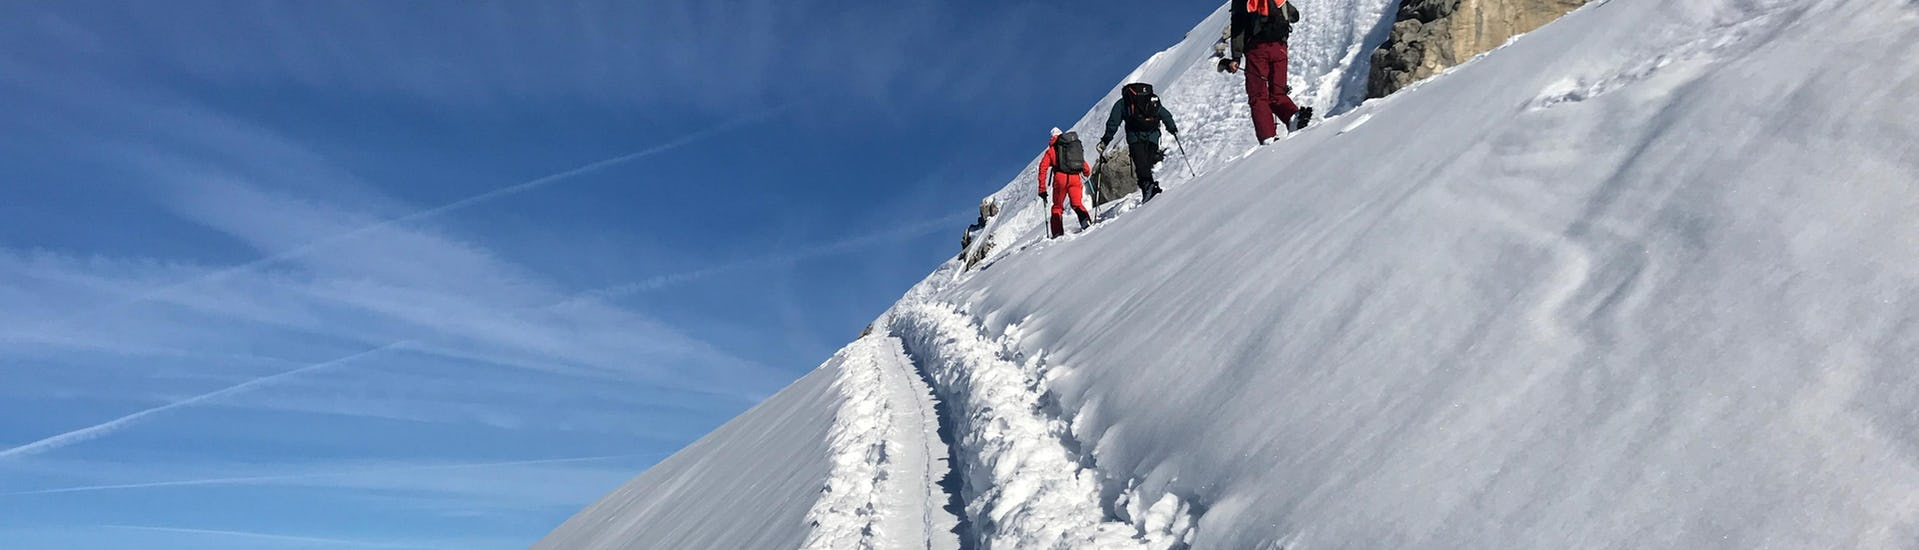 Ski Touring Private - All Levels